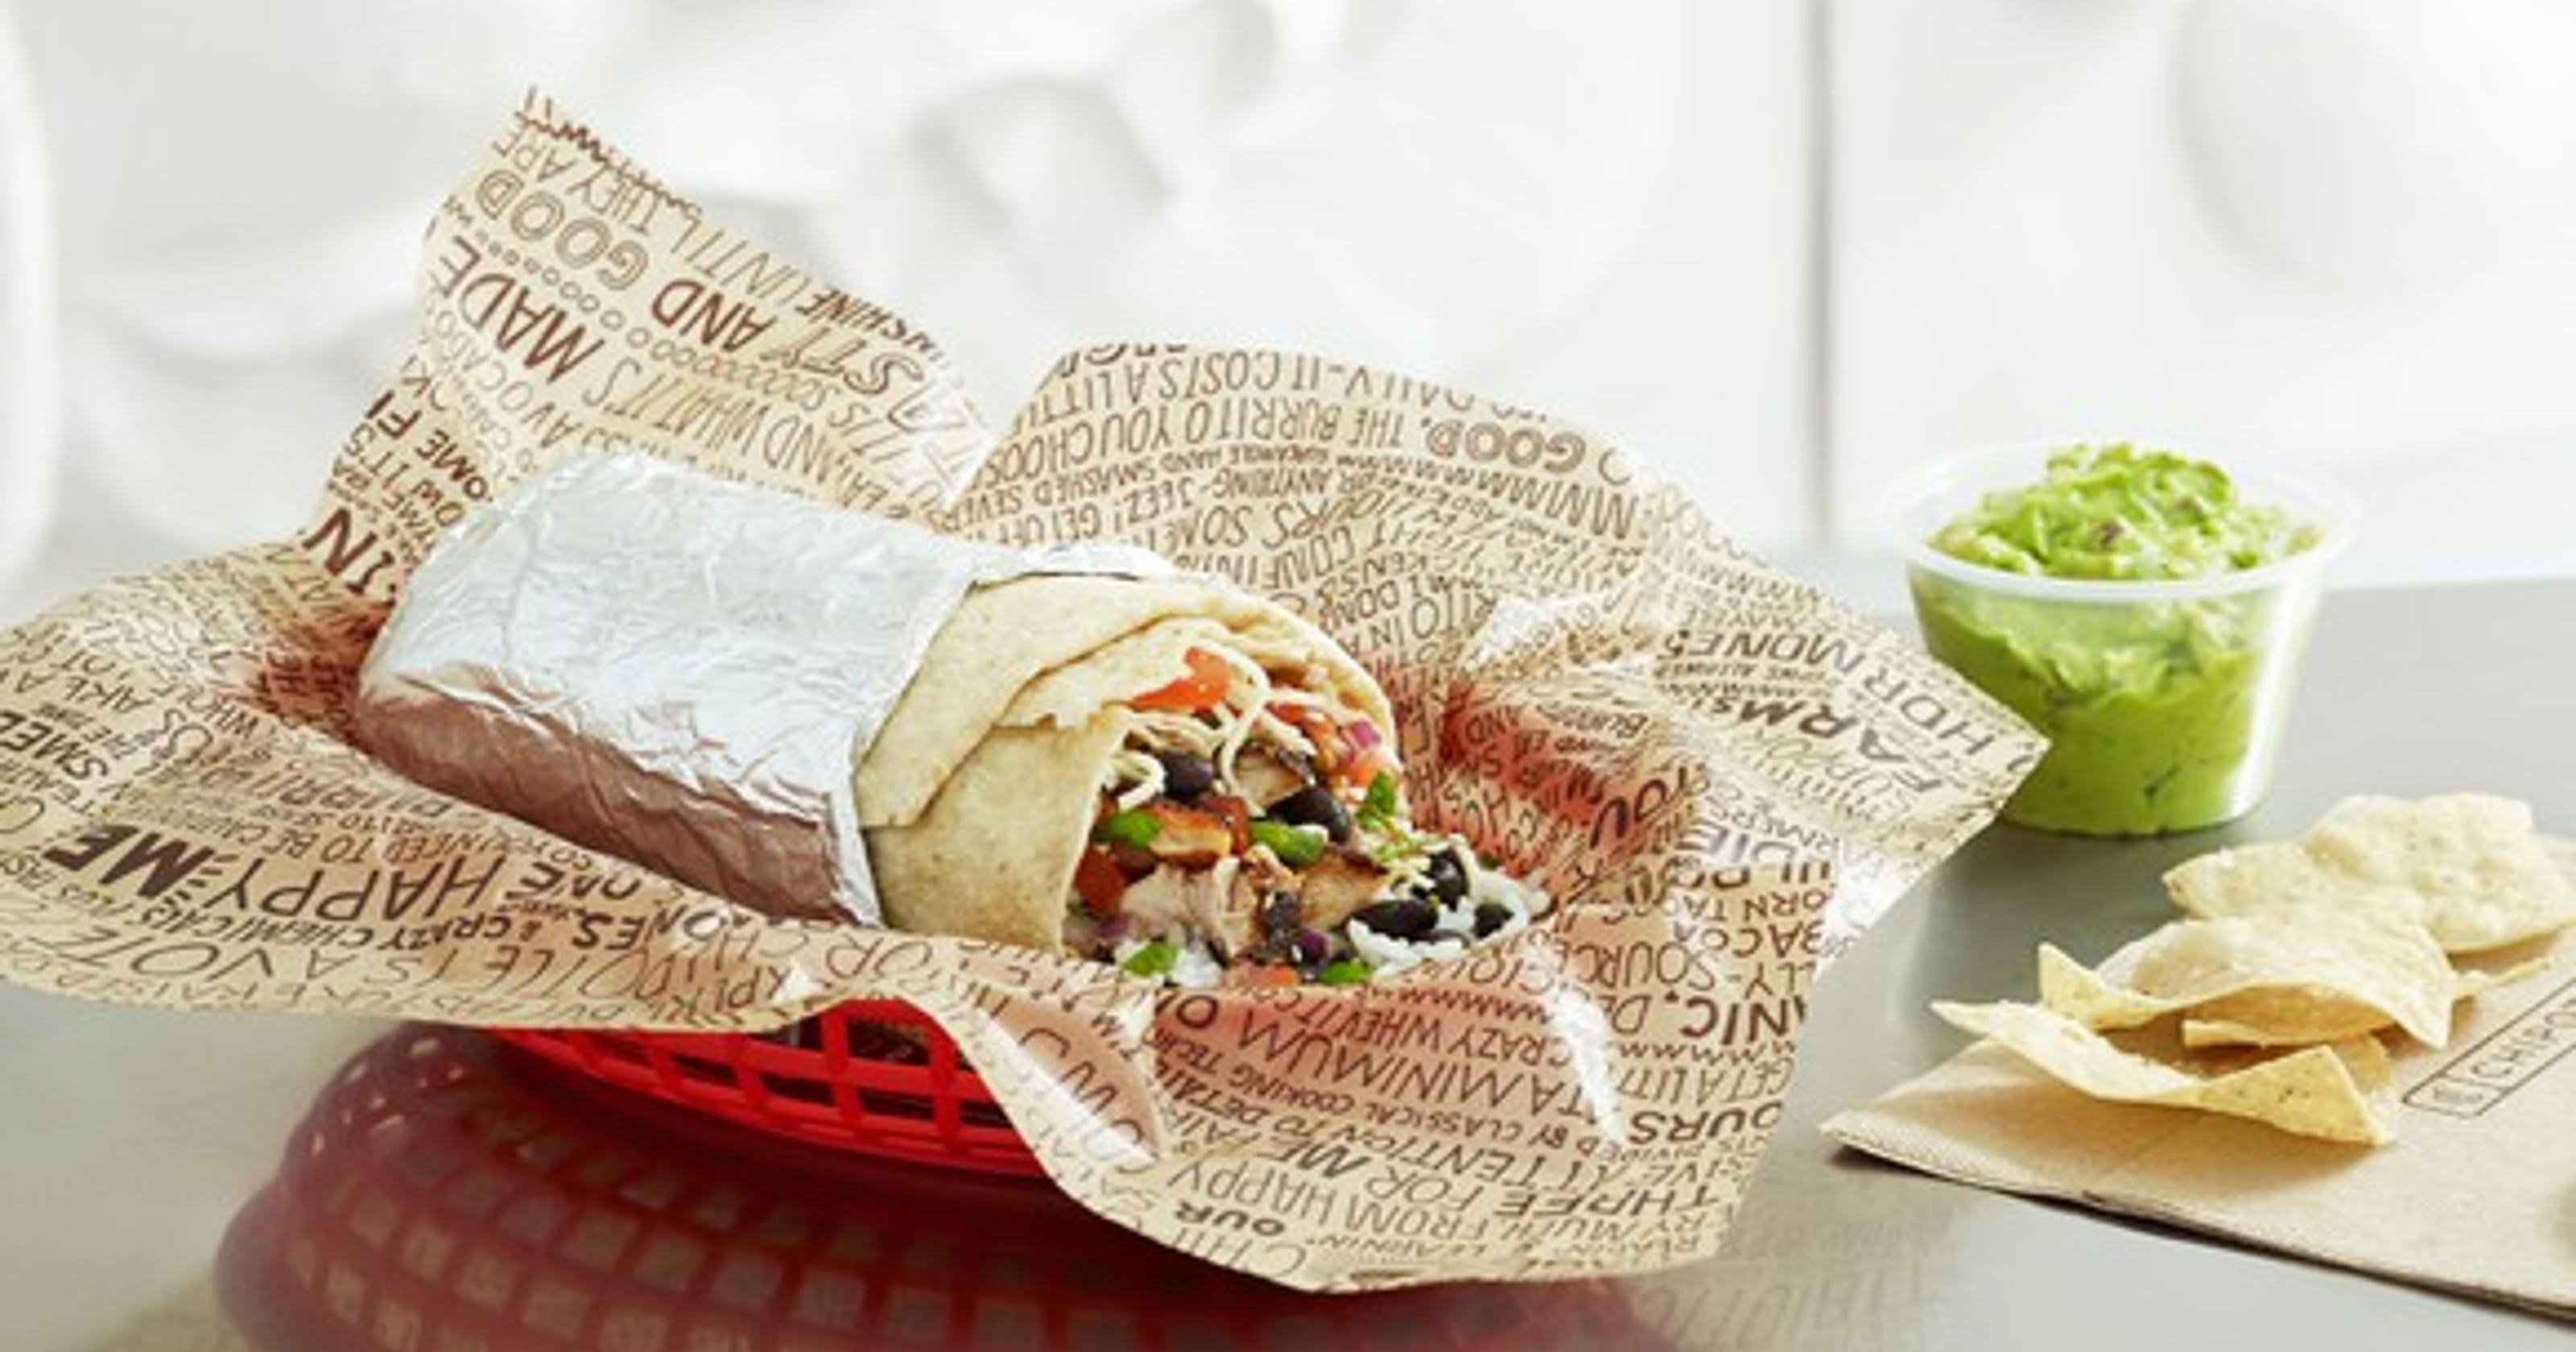 National Burrito Day: Find deals at Moe\'s Southwest Grill and Del Taco